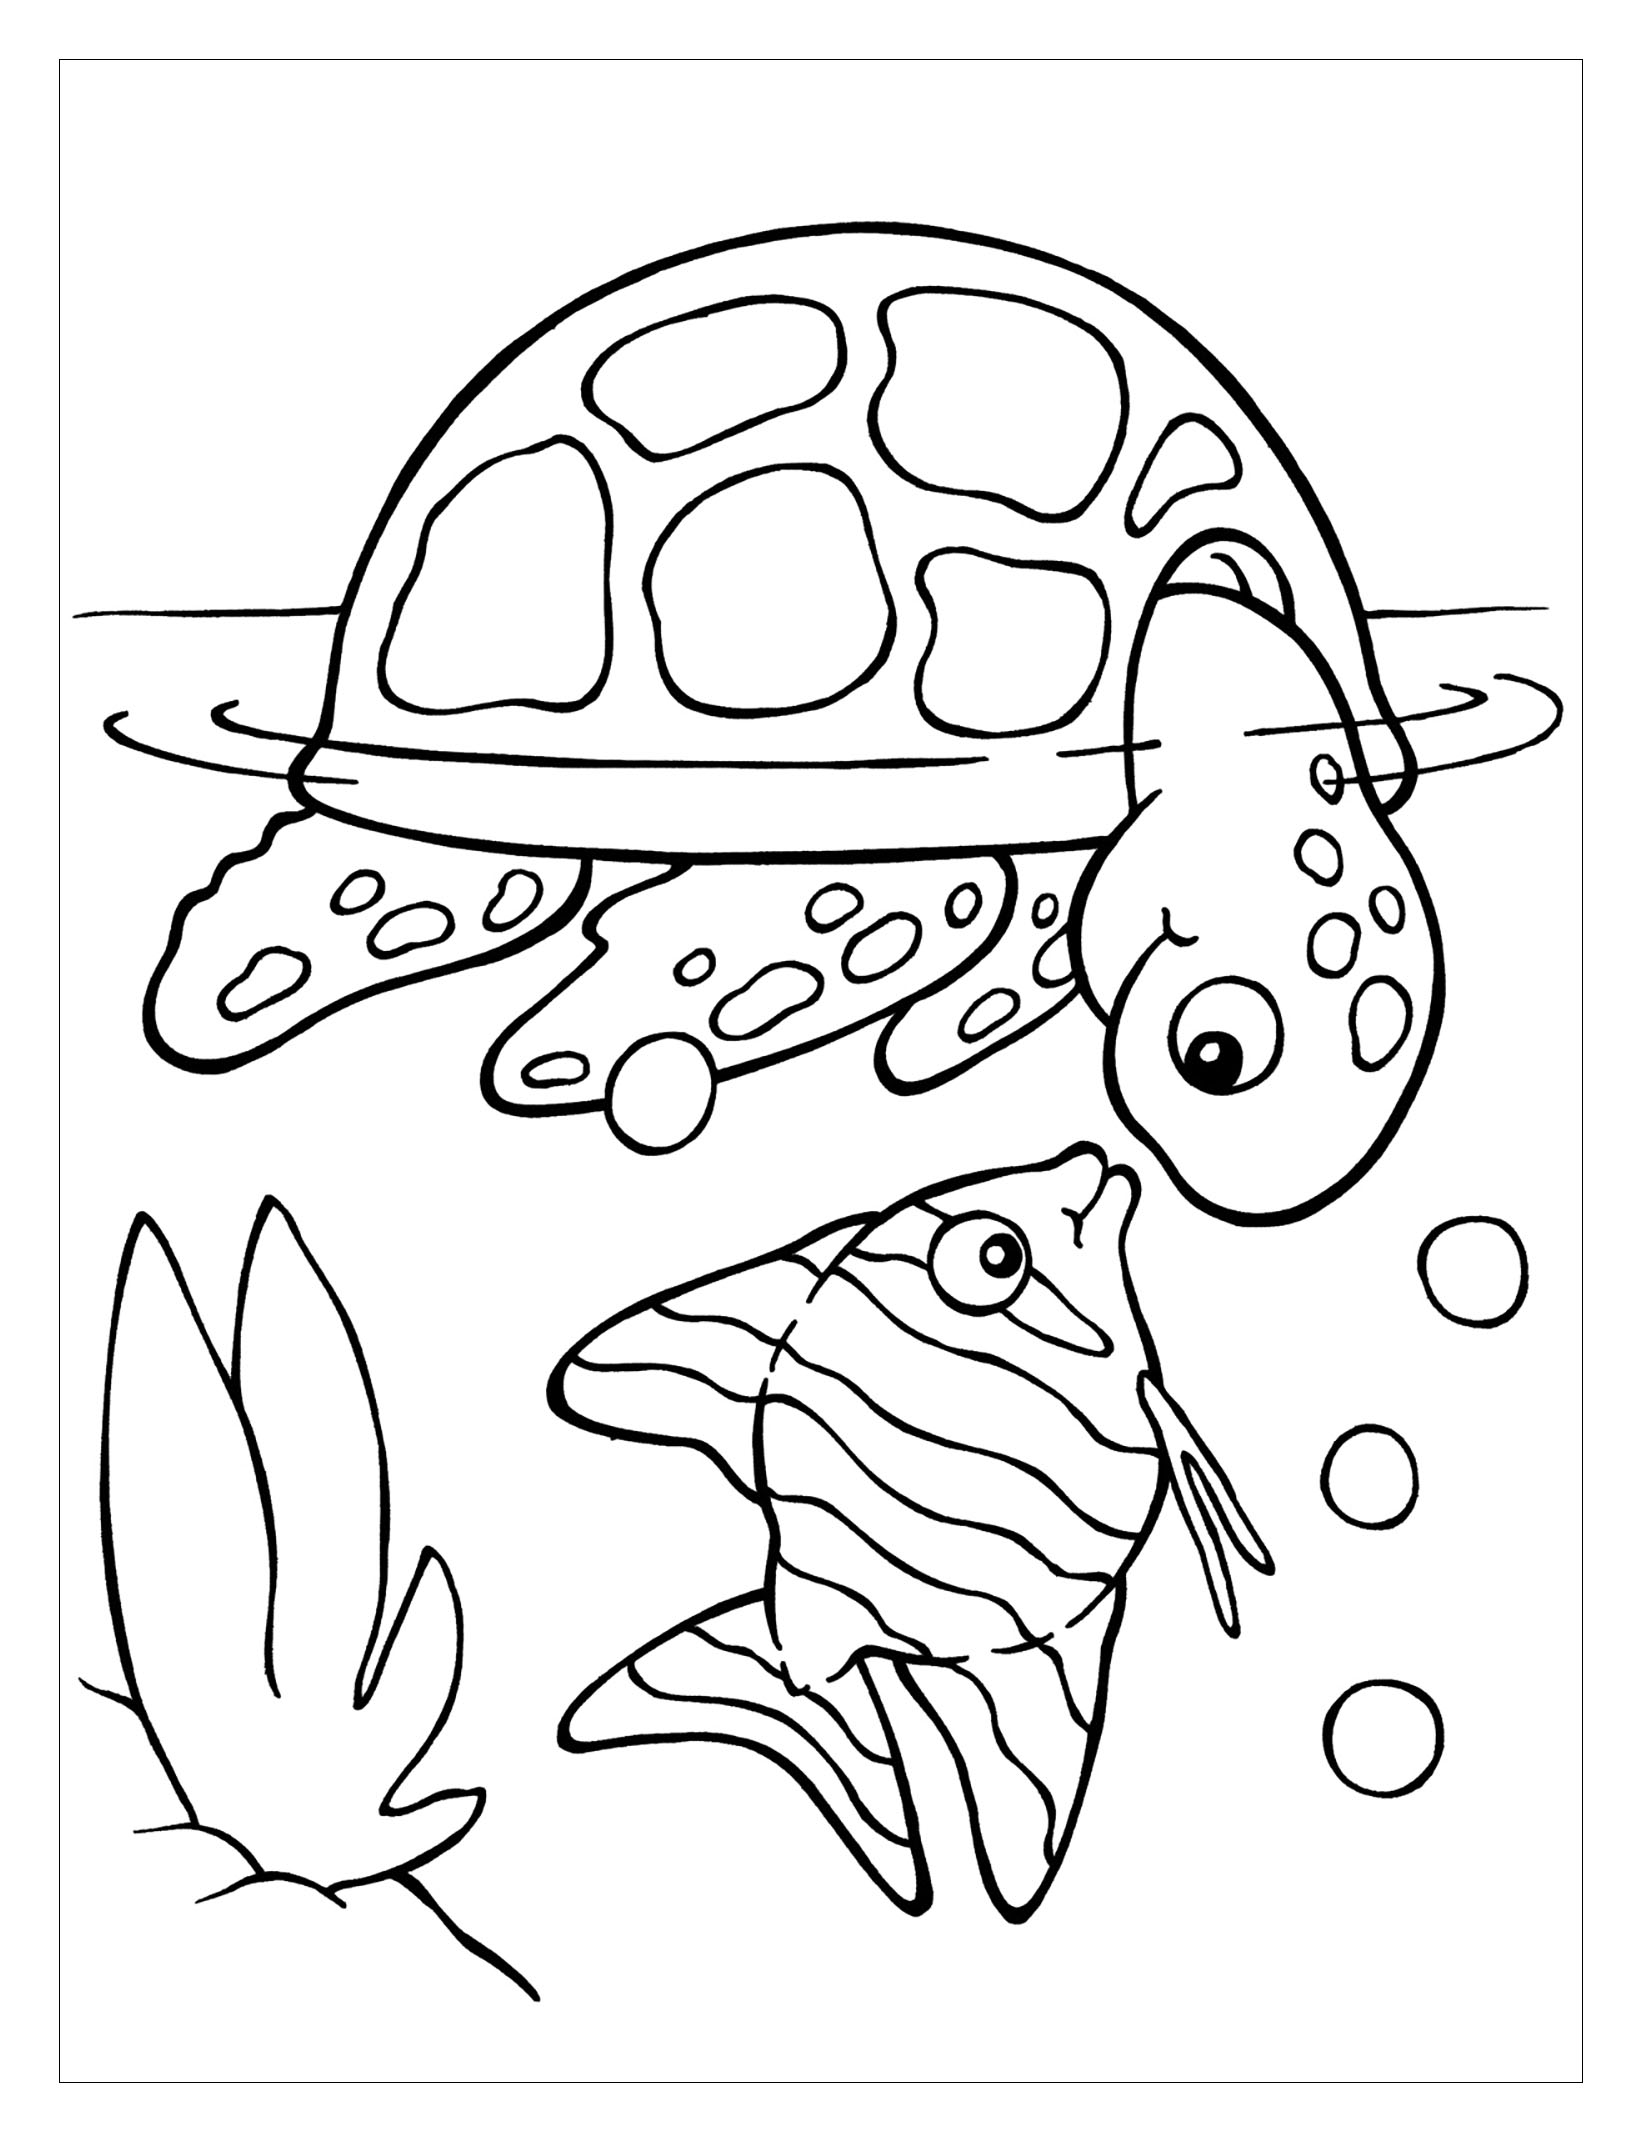 turtle pictures for coloring turtles to download turtles kids coloring pages turtle pictures for coloring